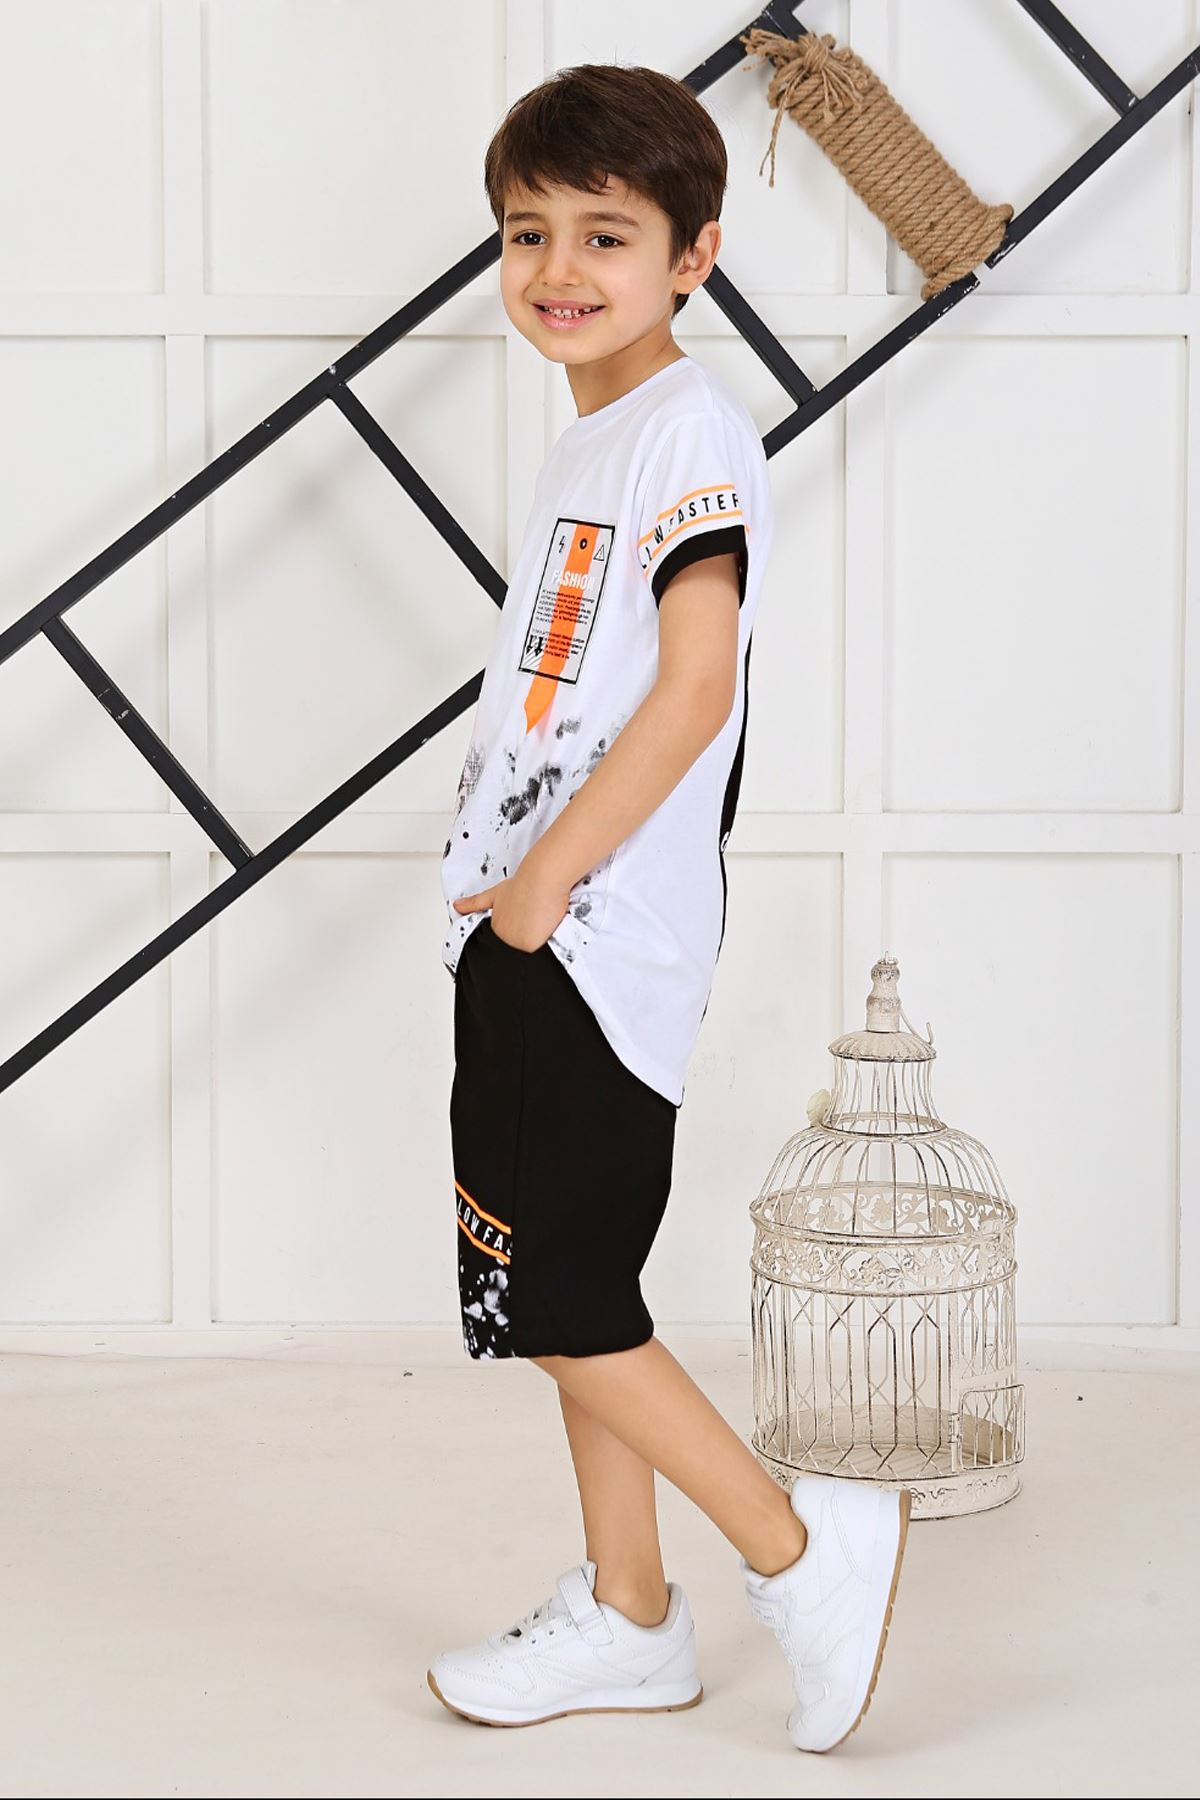 White Boy Summer Shorts Set 2 Piece Clothes Shorts T-shirt Casual Casual Holiday Children Boys Cool Cotton Outfits kids Clothing